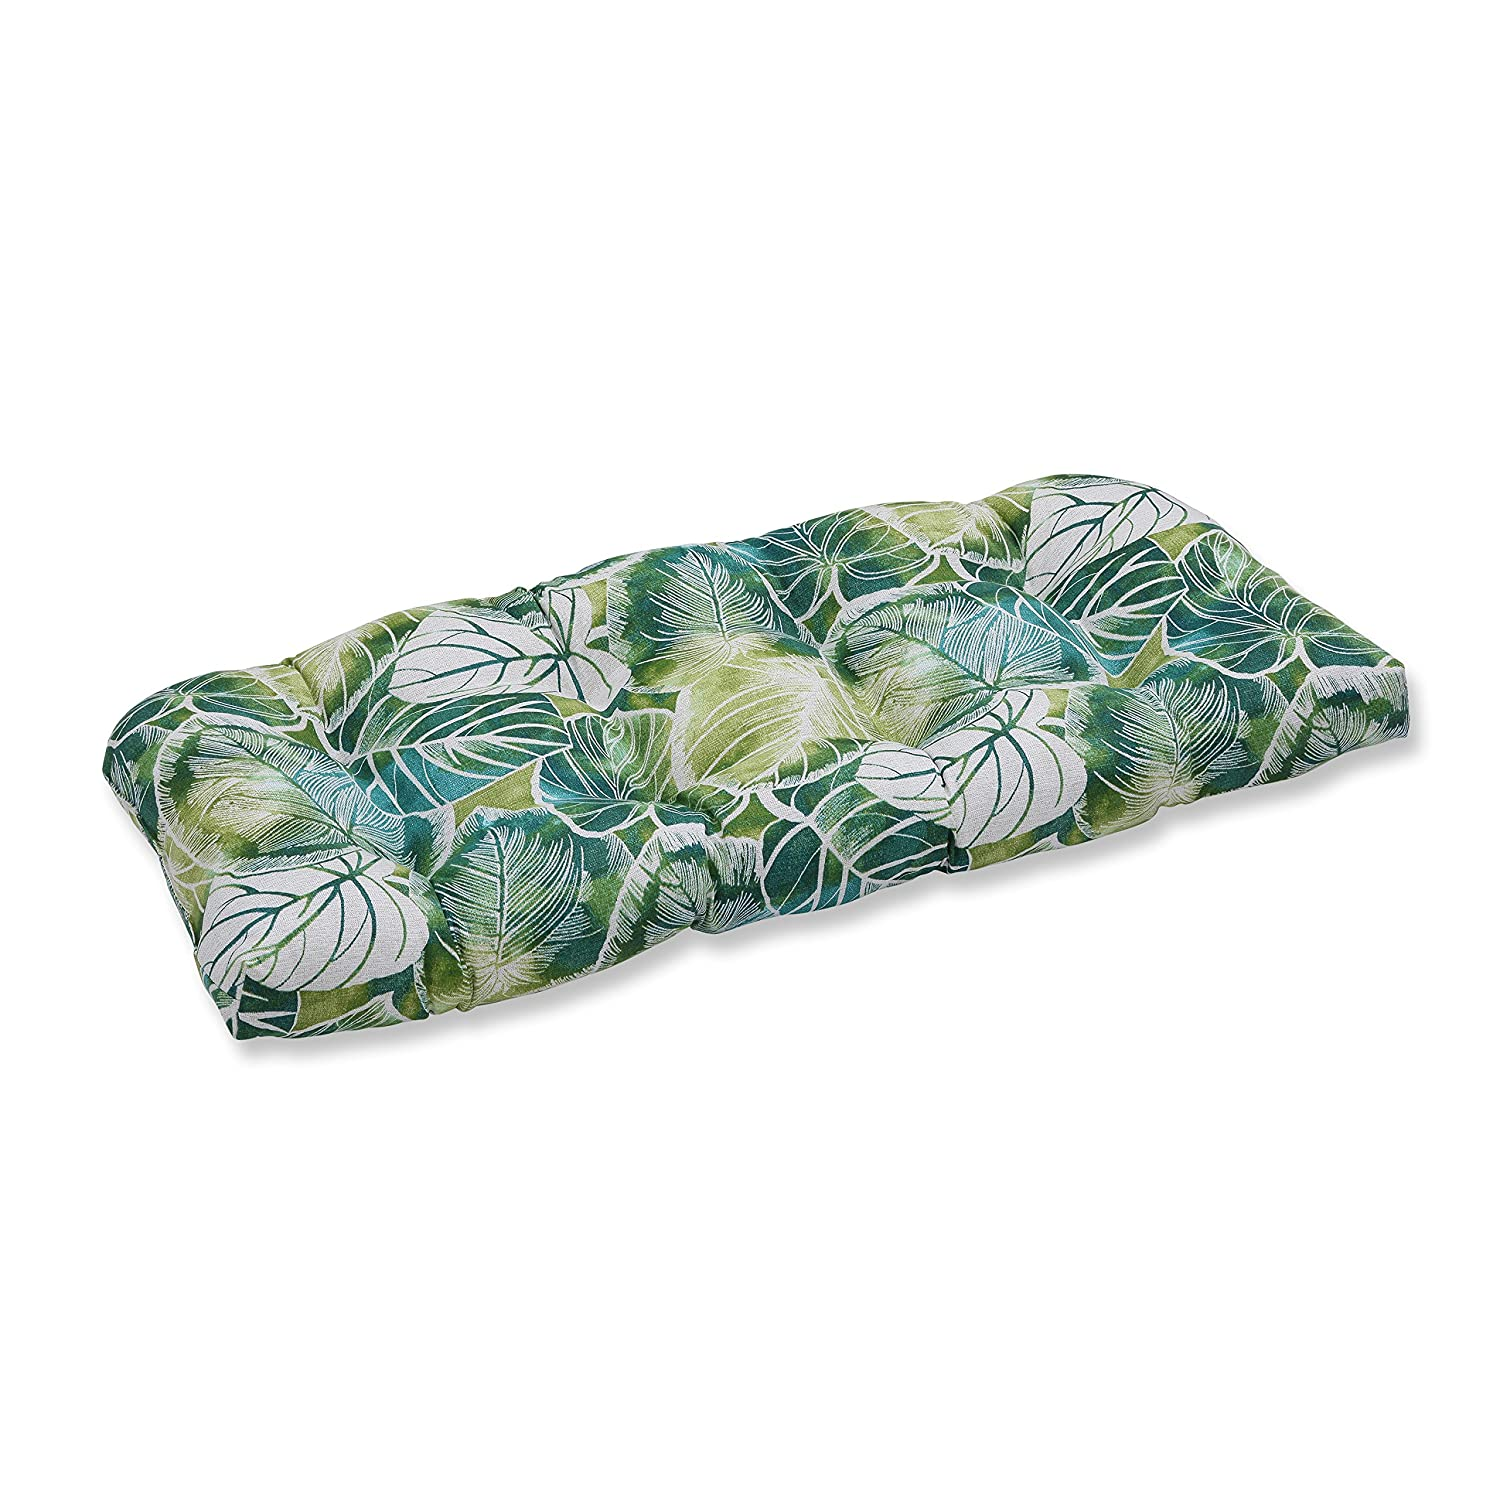 Pillow Perfect Outdoor Indoor Key Cove Lagoon Wicker Loveseat Cushion